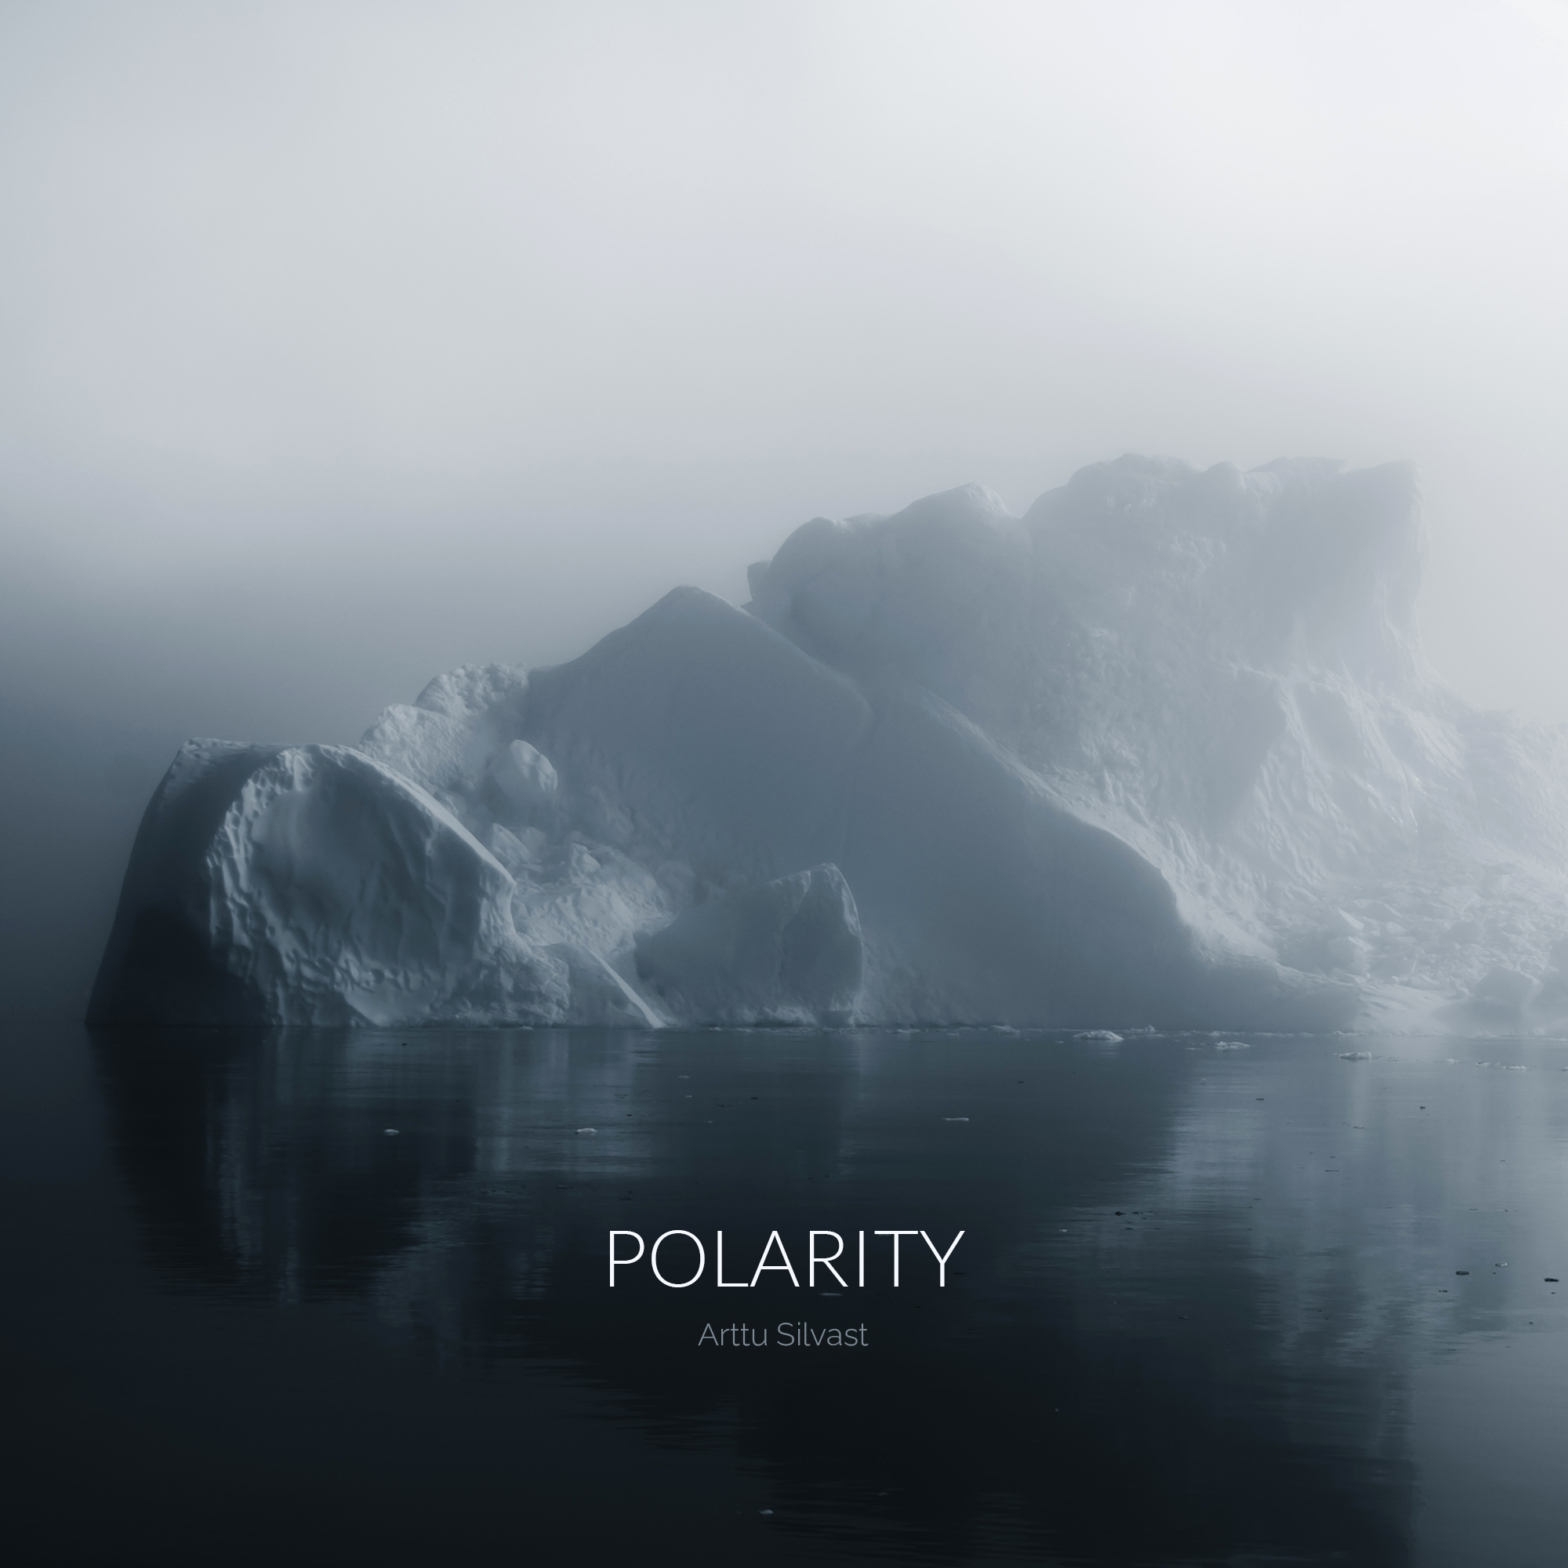 Polarity-albumin kansi.